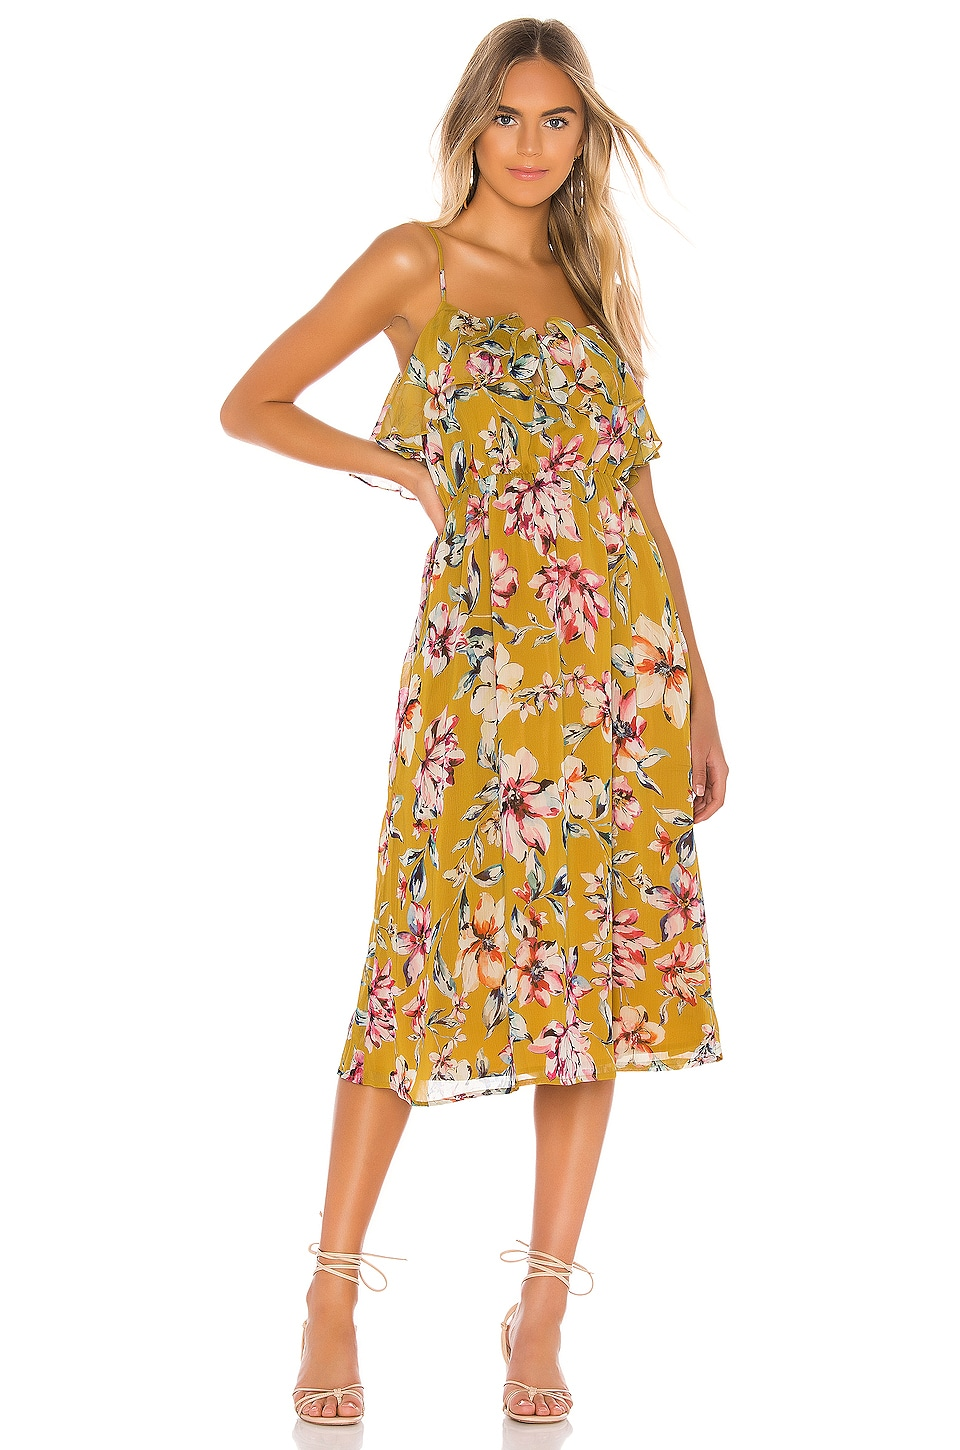 Tularosa Mayven Dress in Mustard Floral